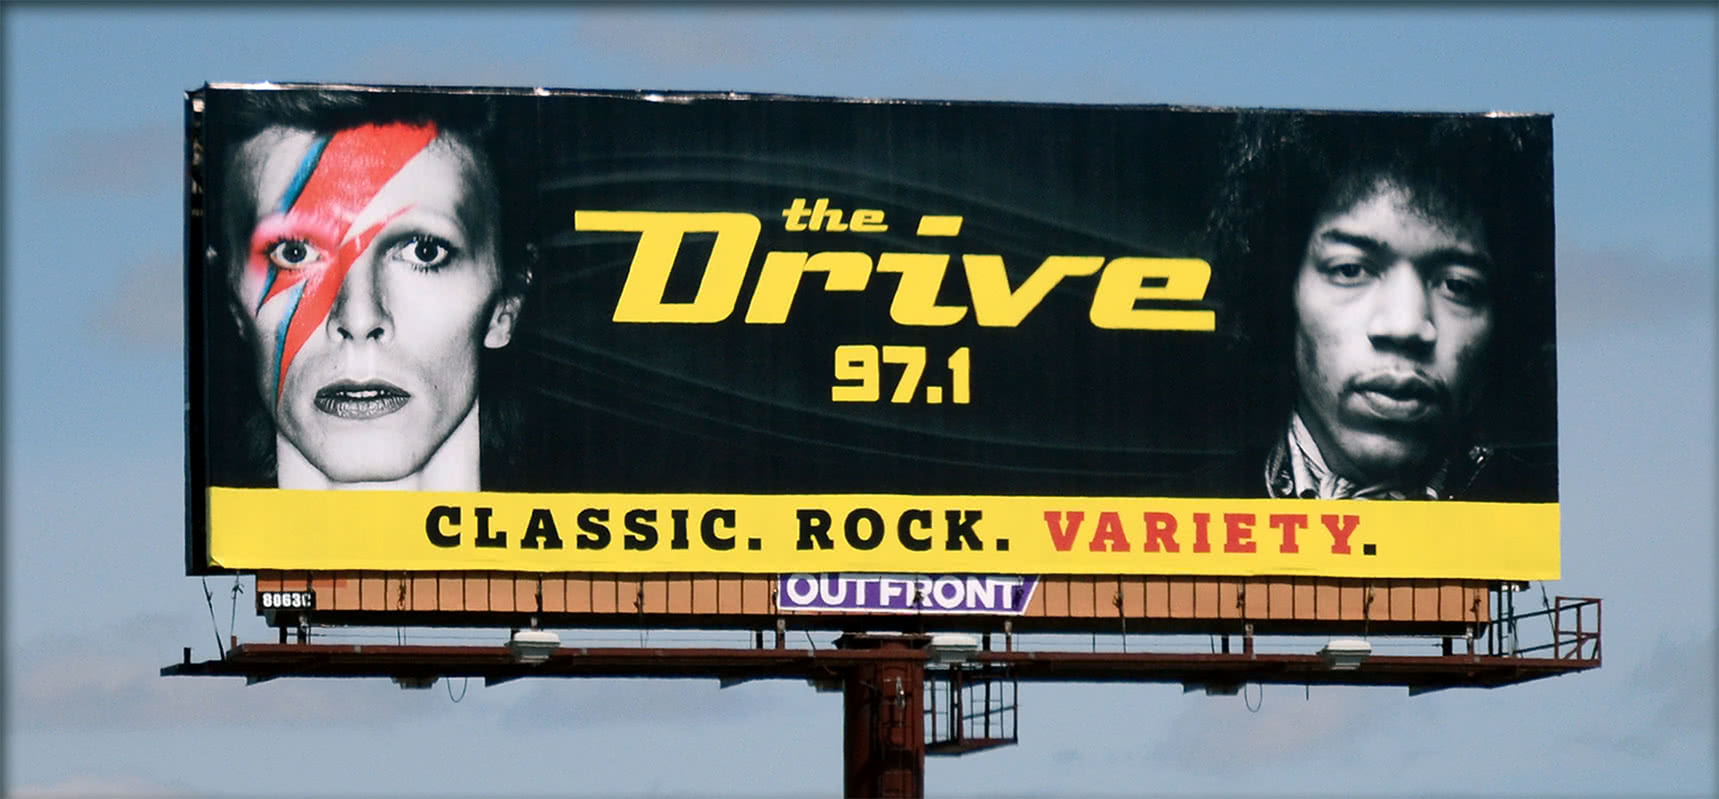 97.1 The Drive - Classic Rock Variety - Radio Station Billboard